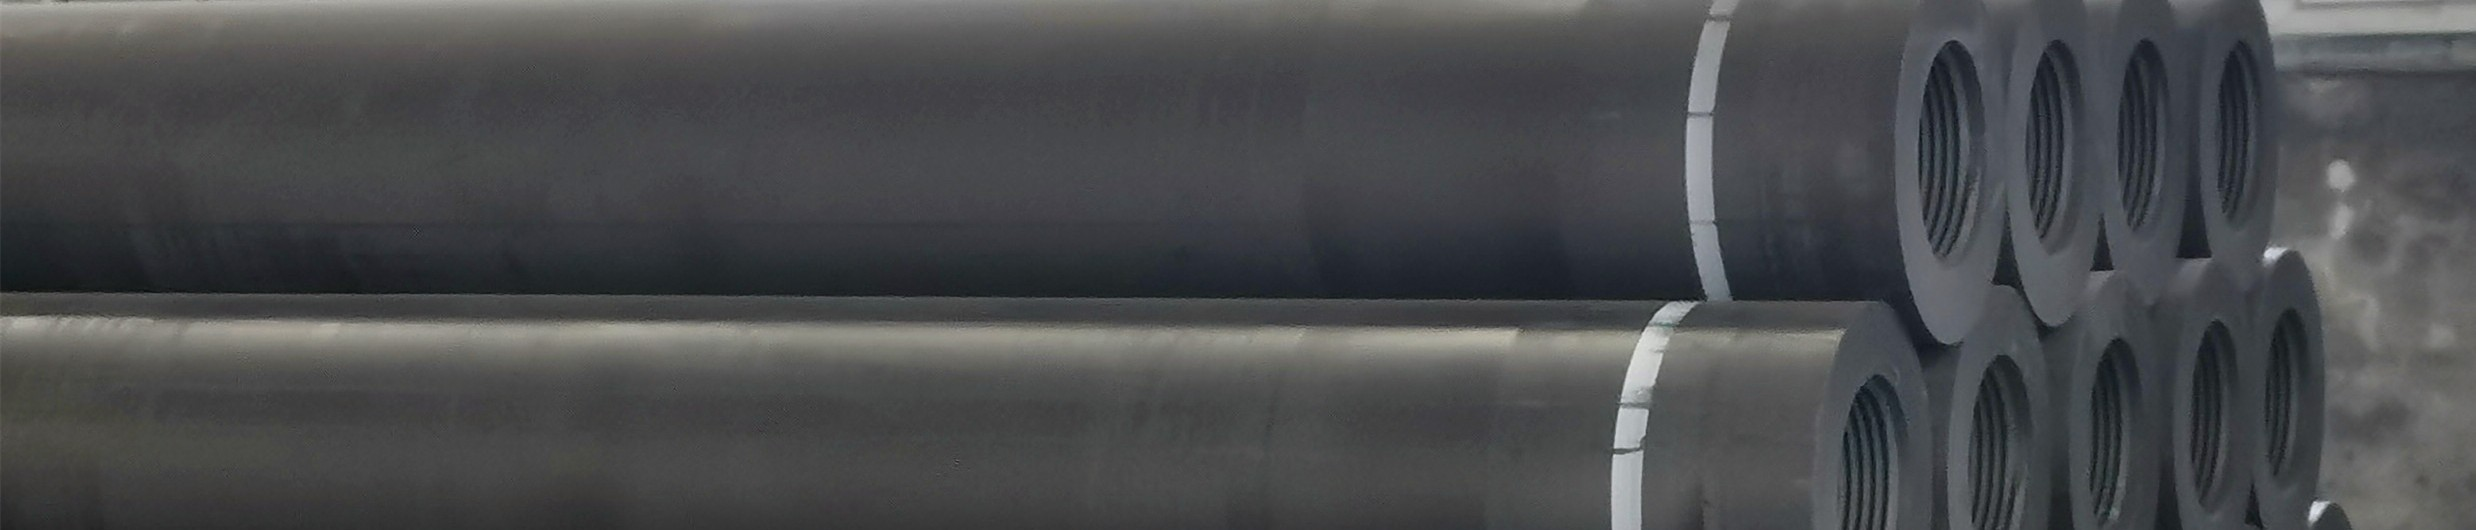 Hebei Well Carbon Imp and Exp Trading Co Ltd Main Image